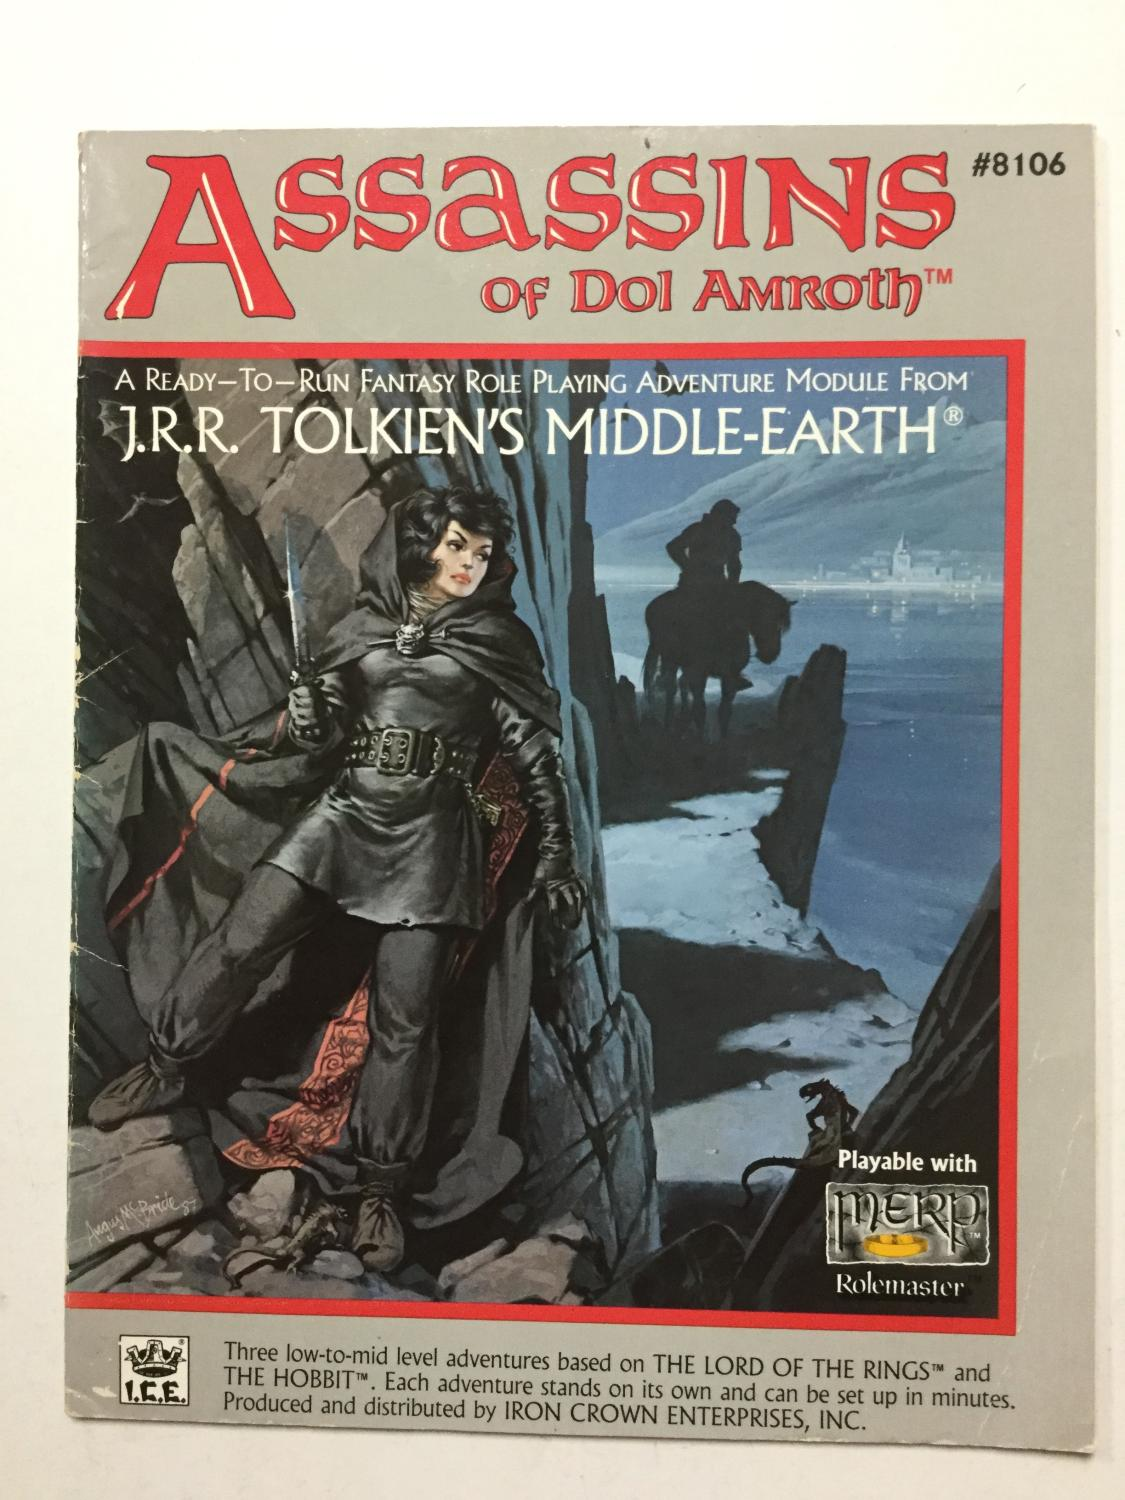 Assassins of Dol Amroth (Middle Earth Role Playing/MERP #8106) Crutchfield, Charlie, Fenlon, Peter C. Very Good Softcover VG+. Stated First U.S. Edition, November 1987. Some light creasing/wear to spine, one crease on lower right side of front cover, small dampstain on to